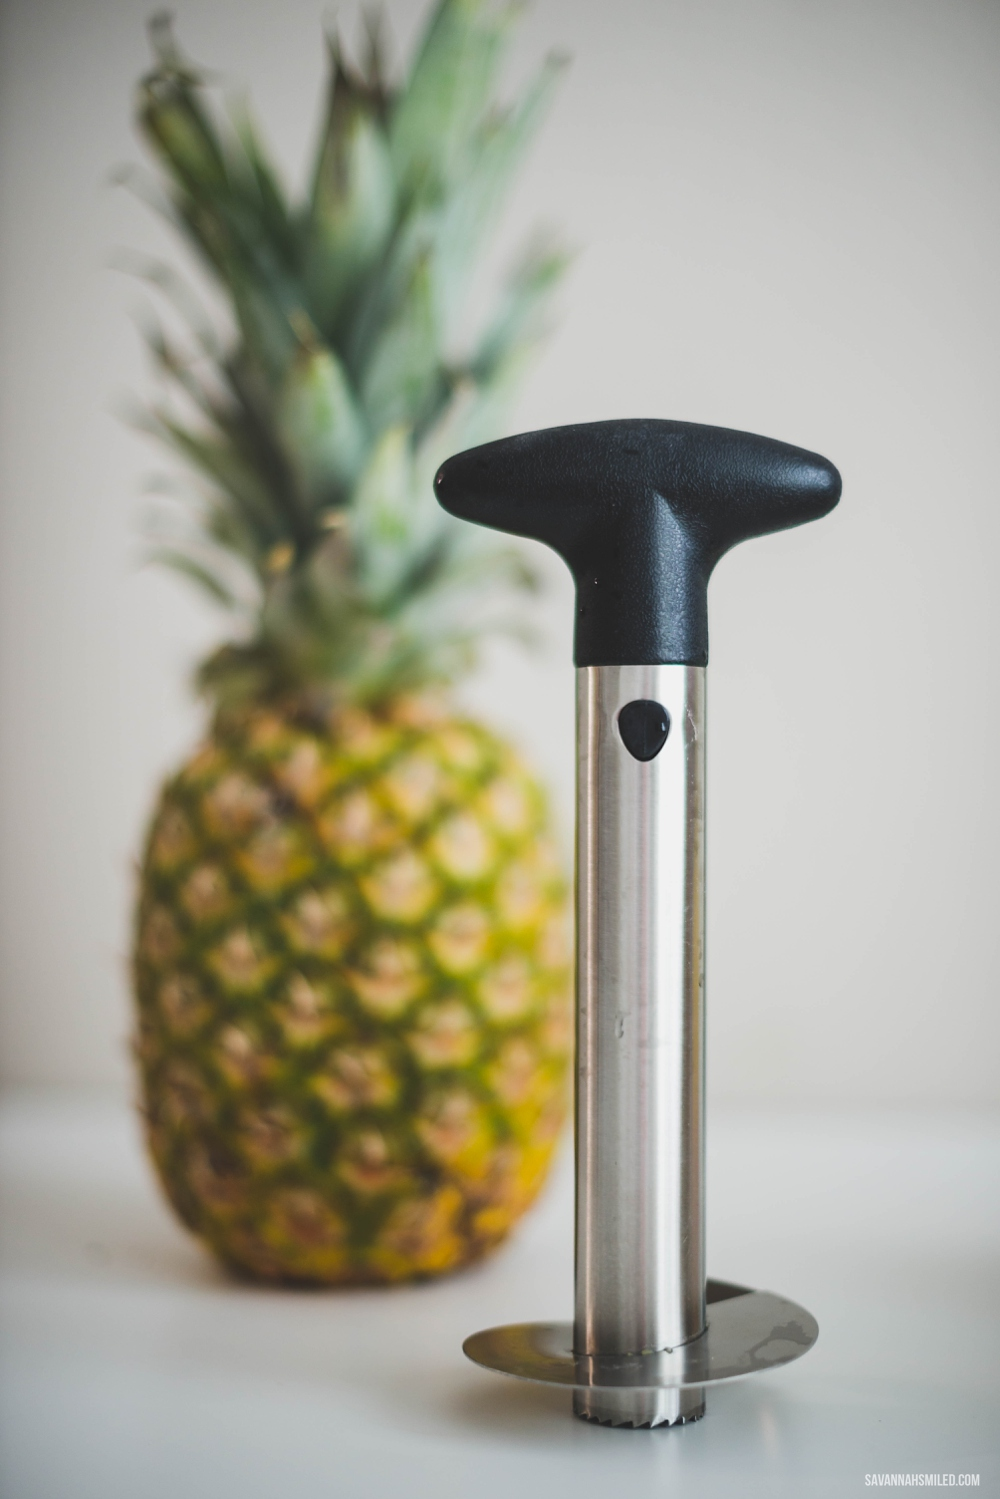 pinapple-slicer-amazon-6.jpg